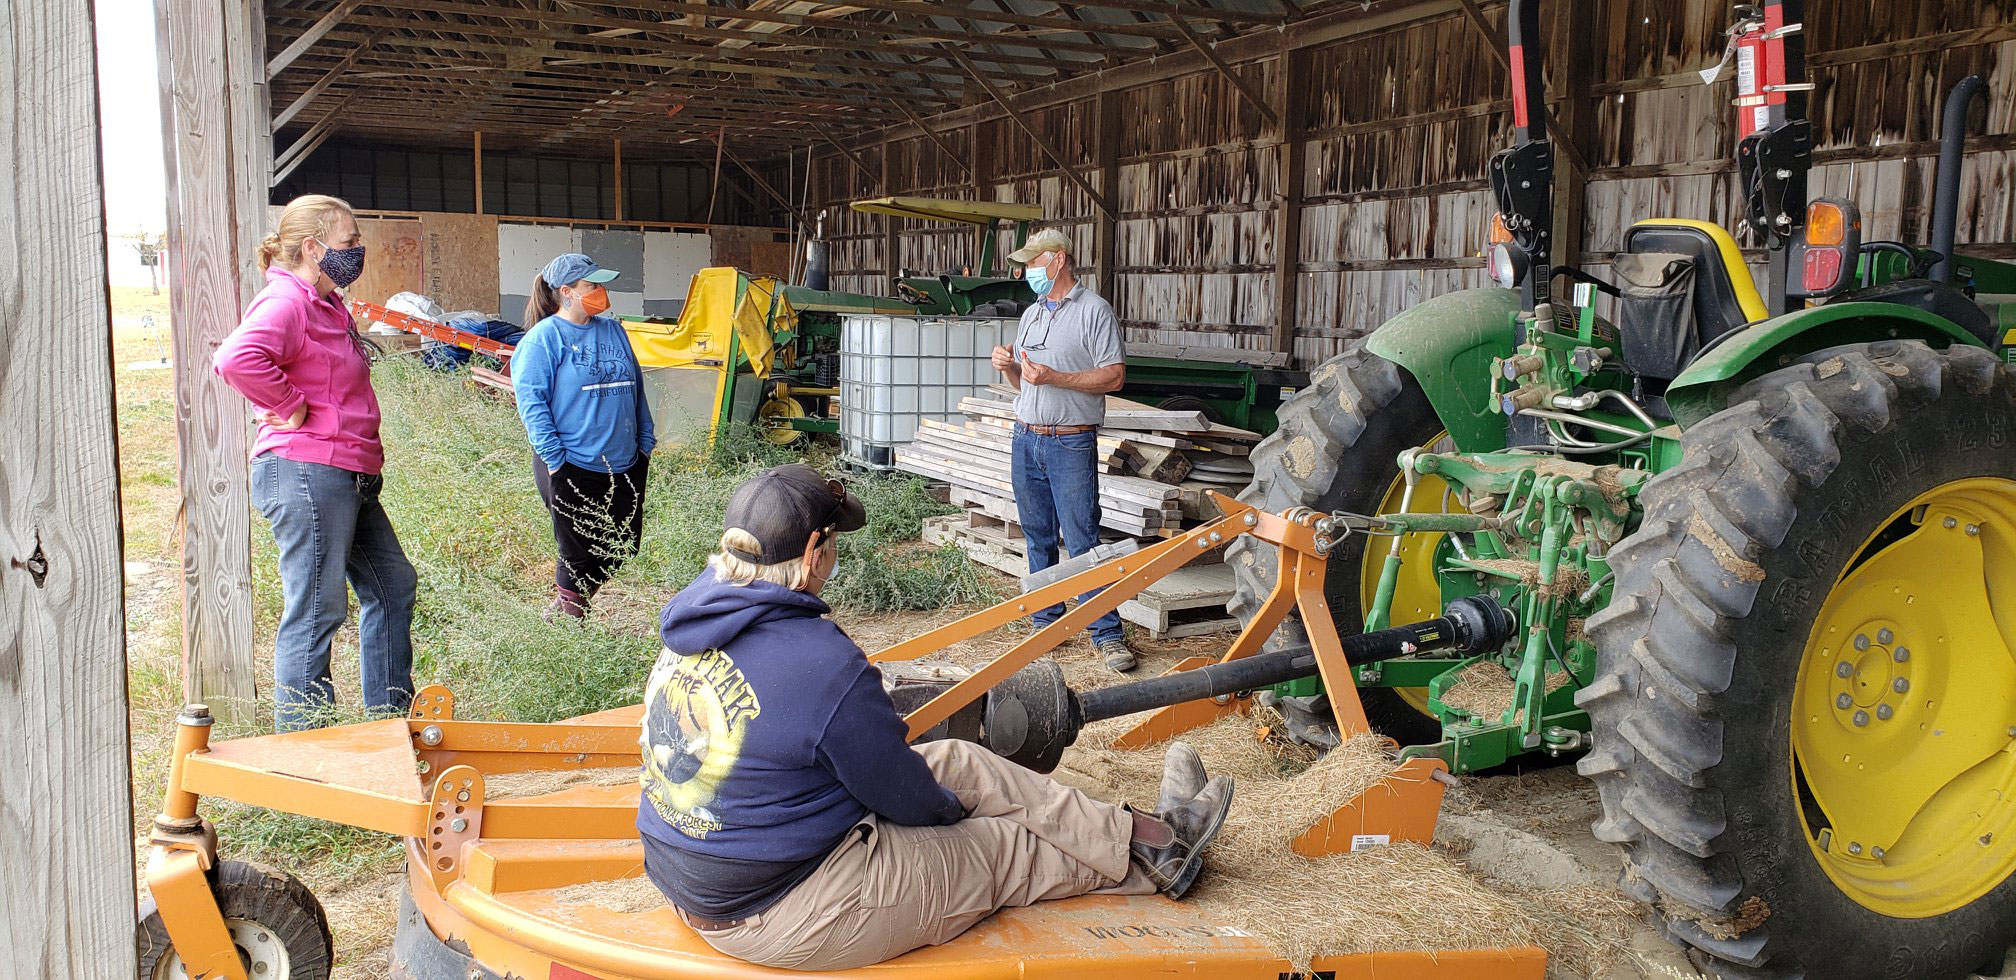 AgrAbility workshop held in barn, participants wearing masks